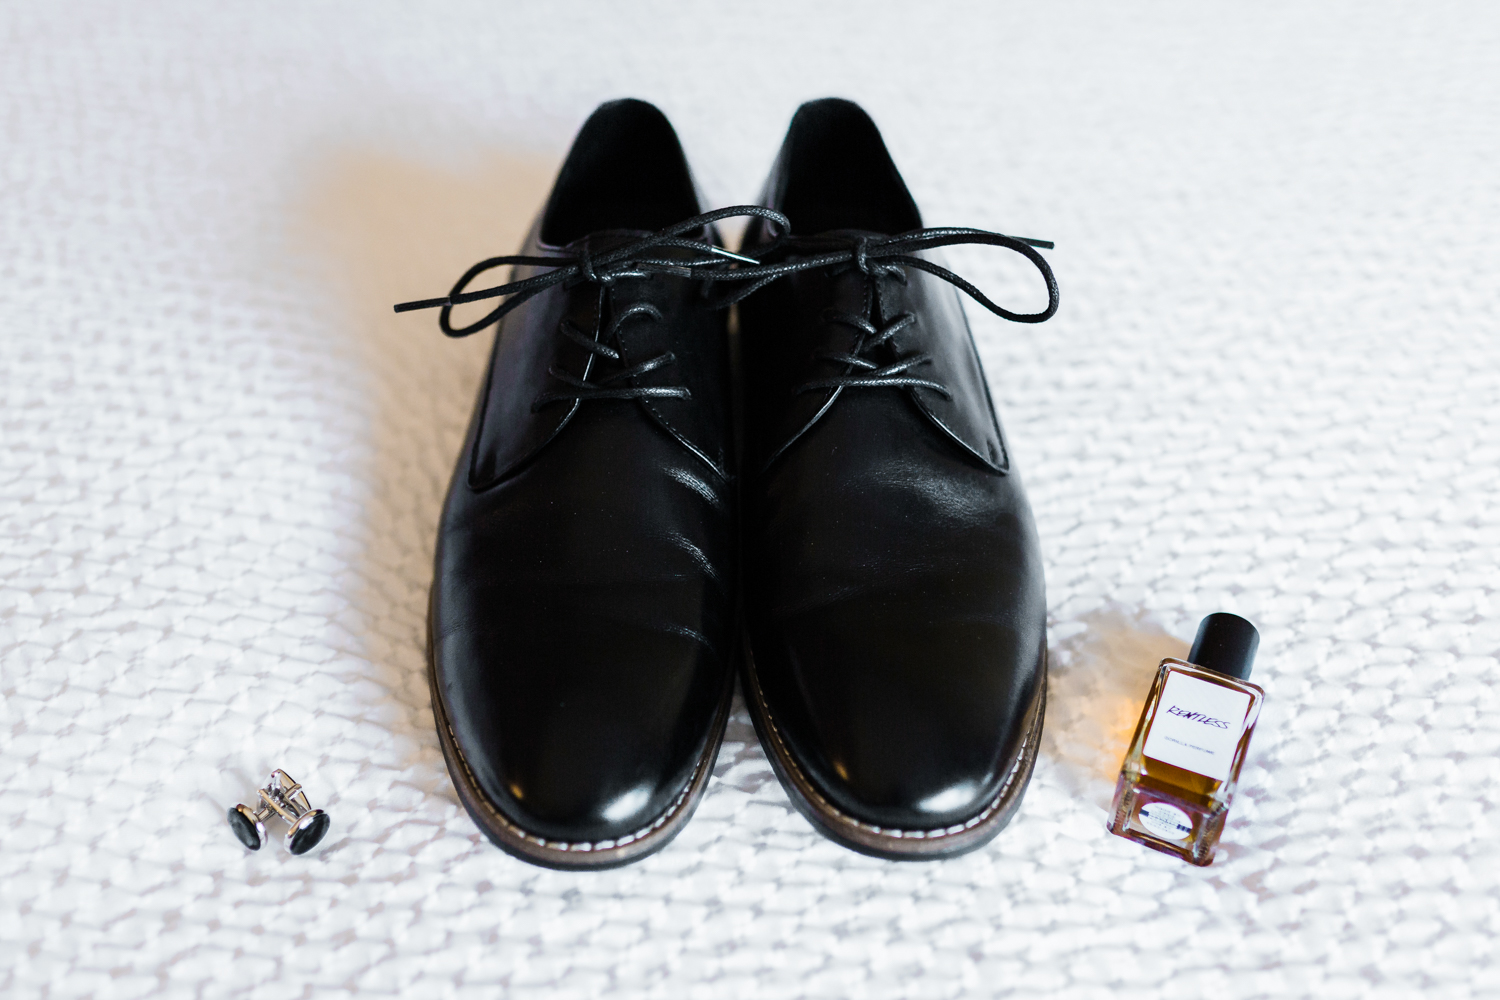 Grooms shoes with cuff links and cologne - highly recommended husband and wife photography in MD